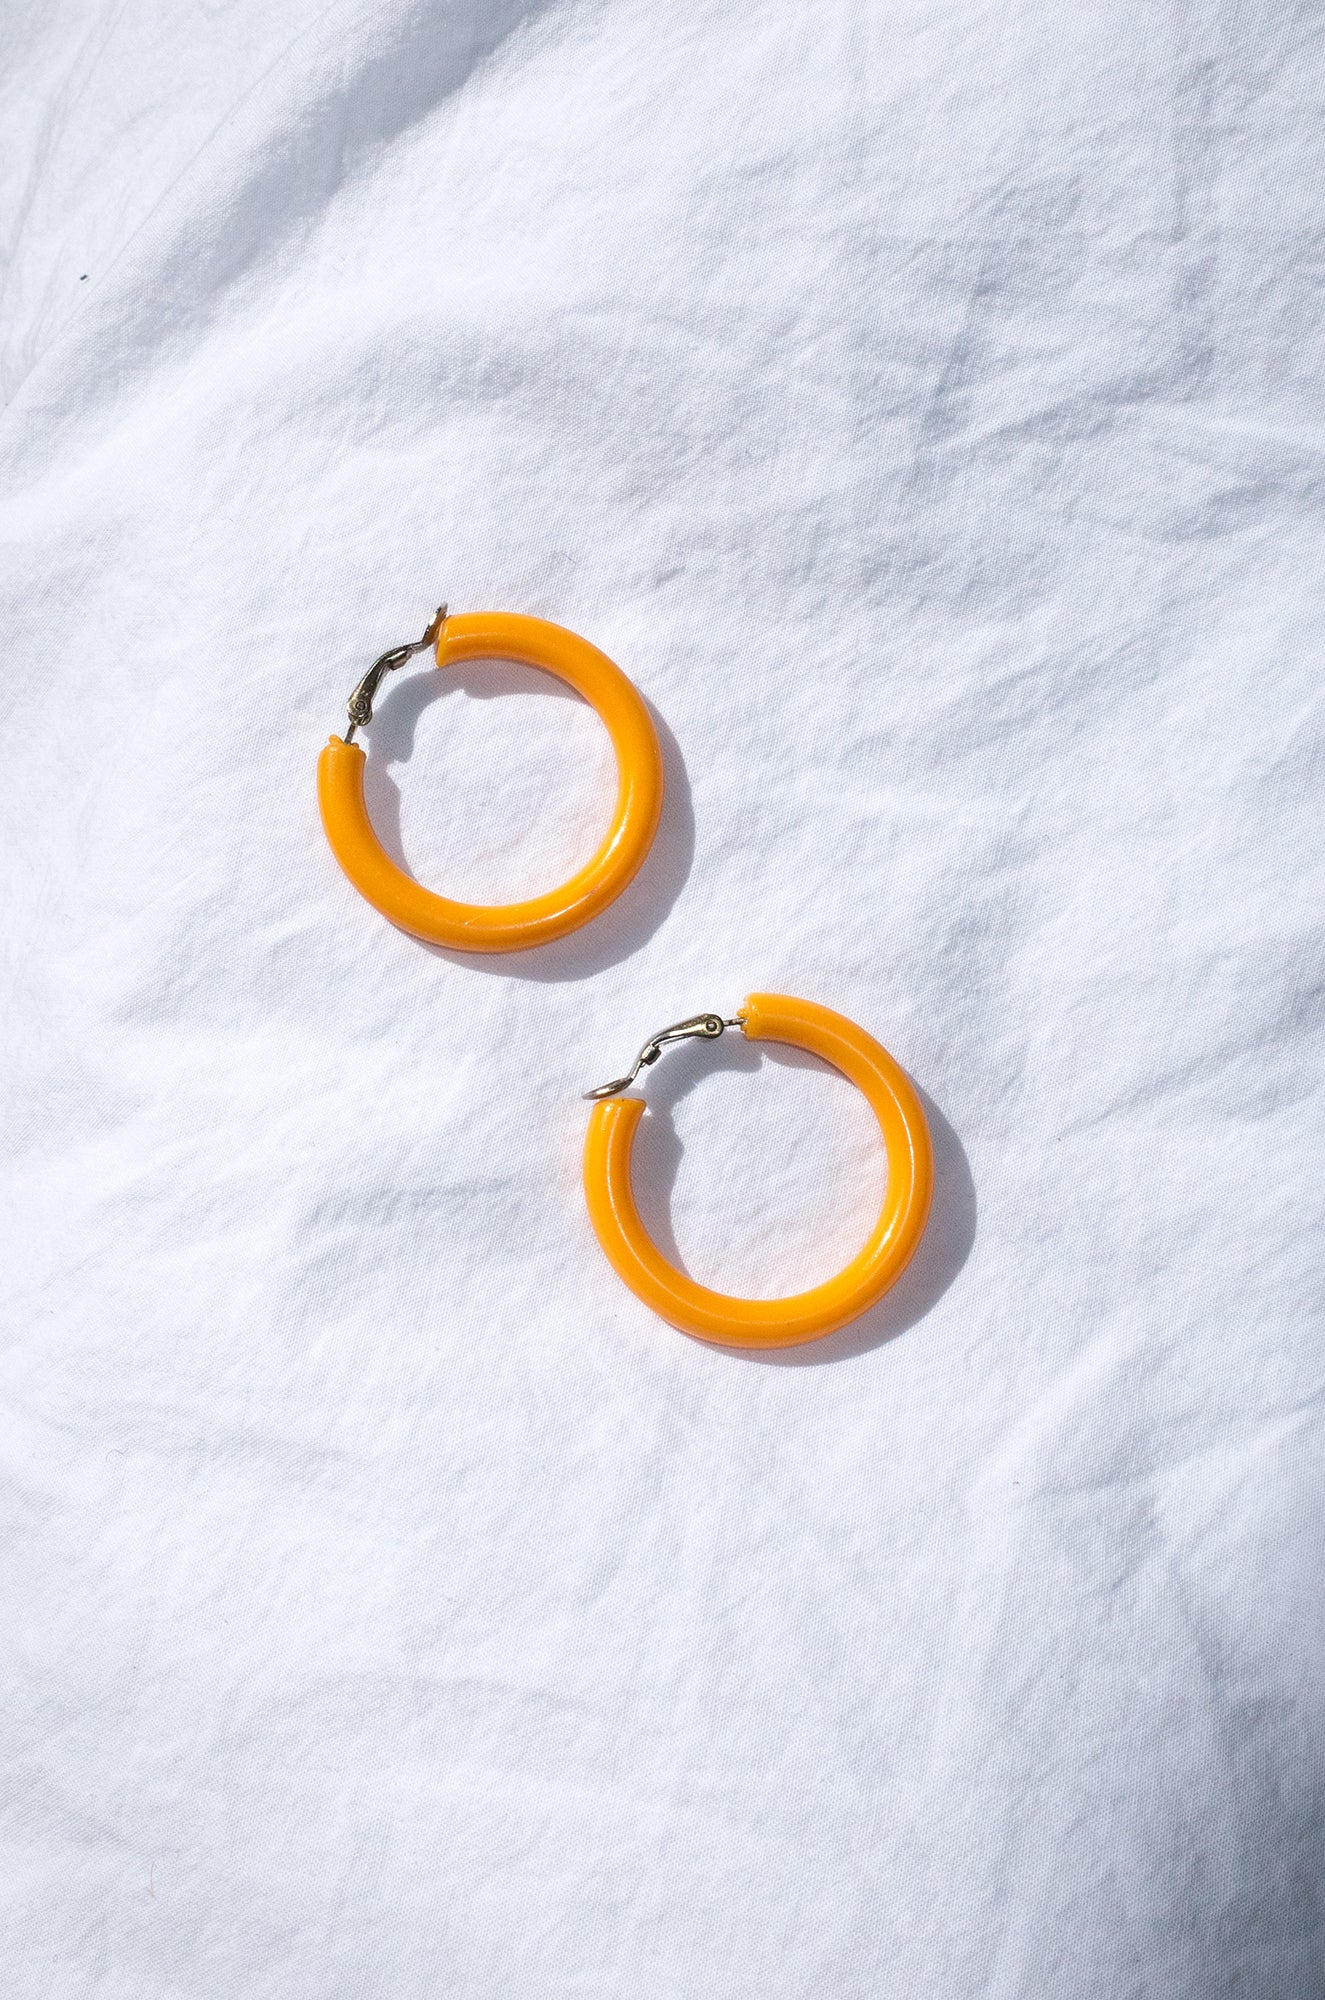 Vintage 1960s tangerine plastic hoop earrings